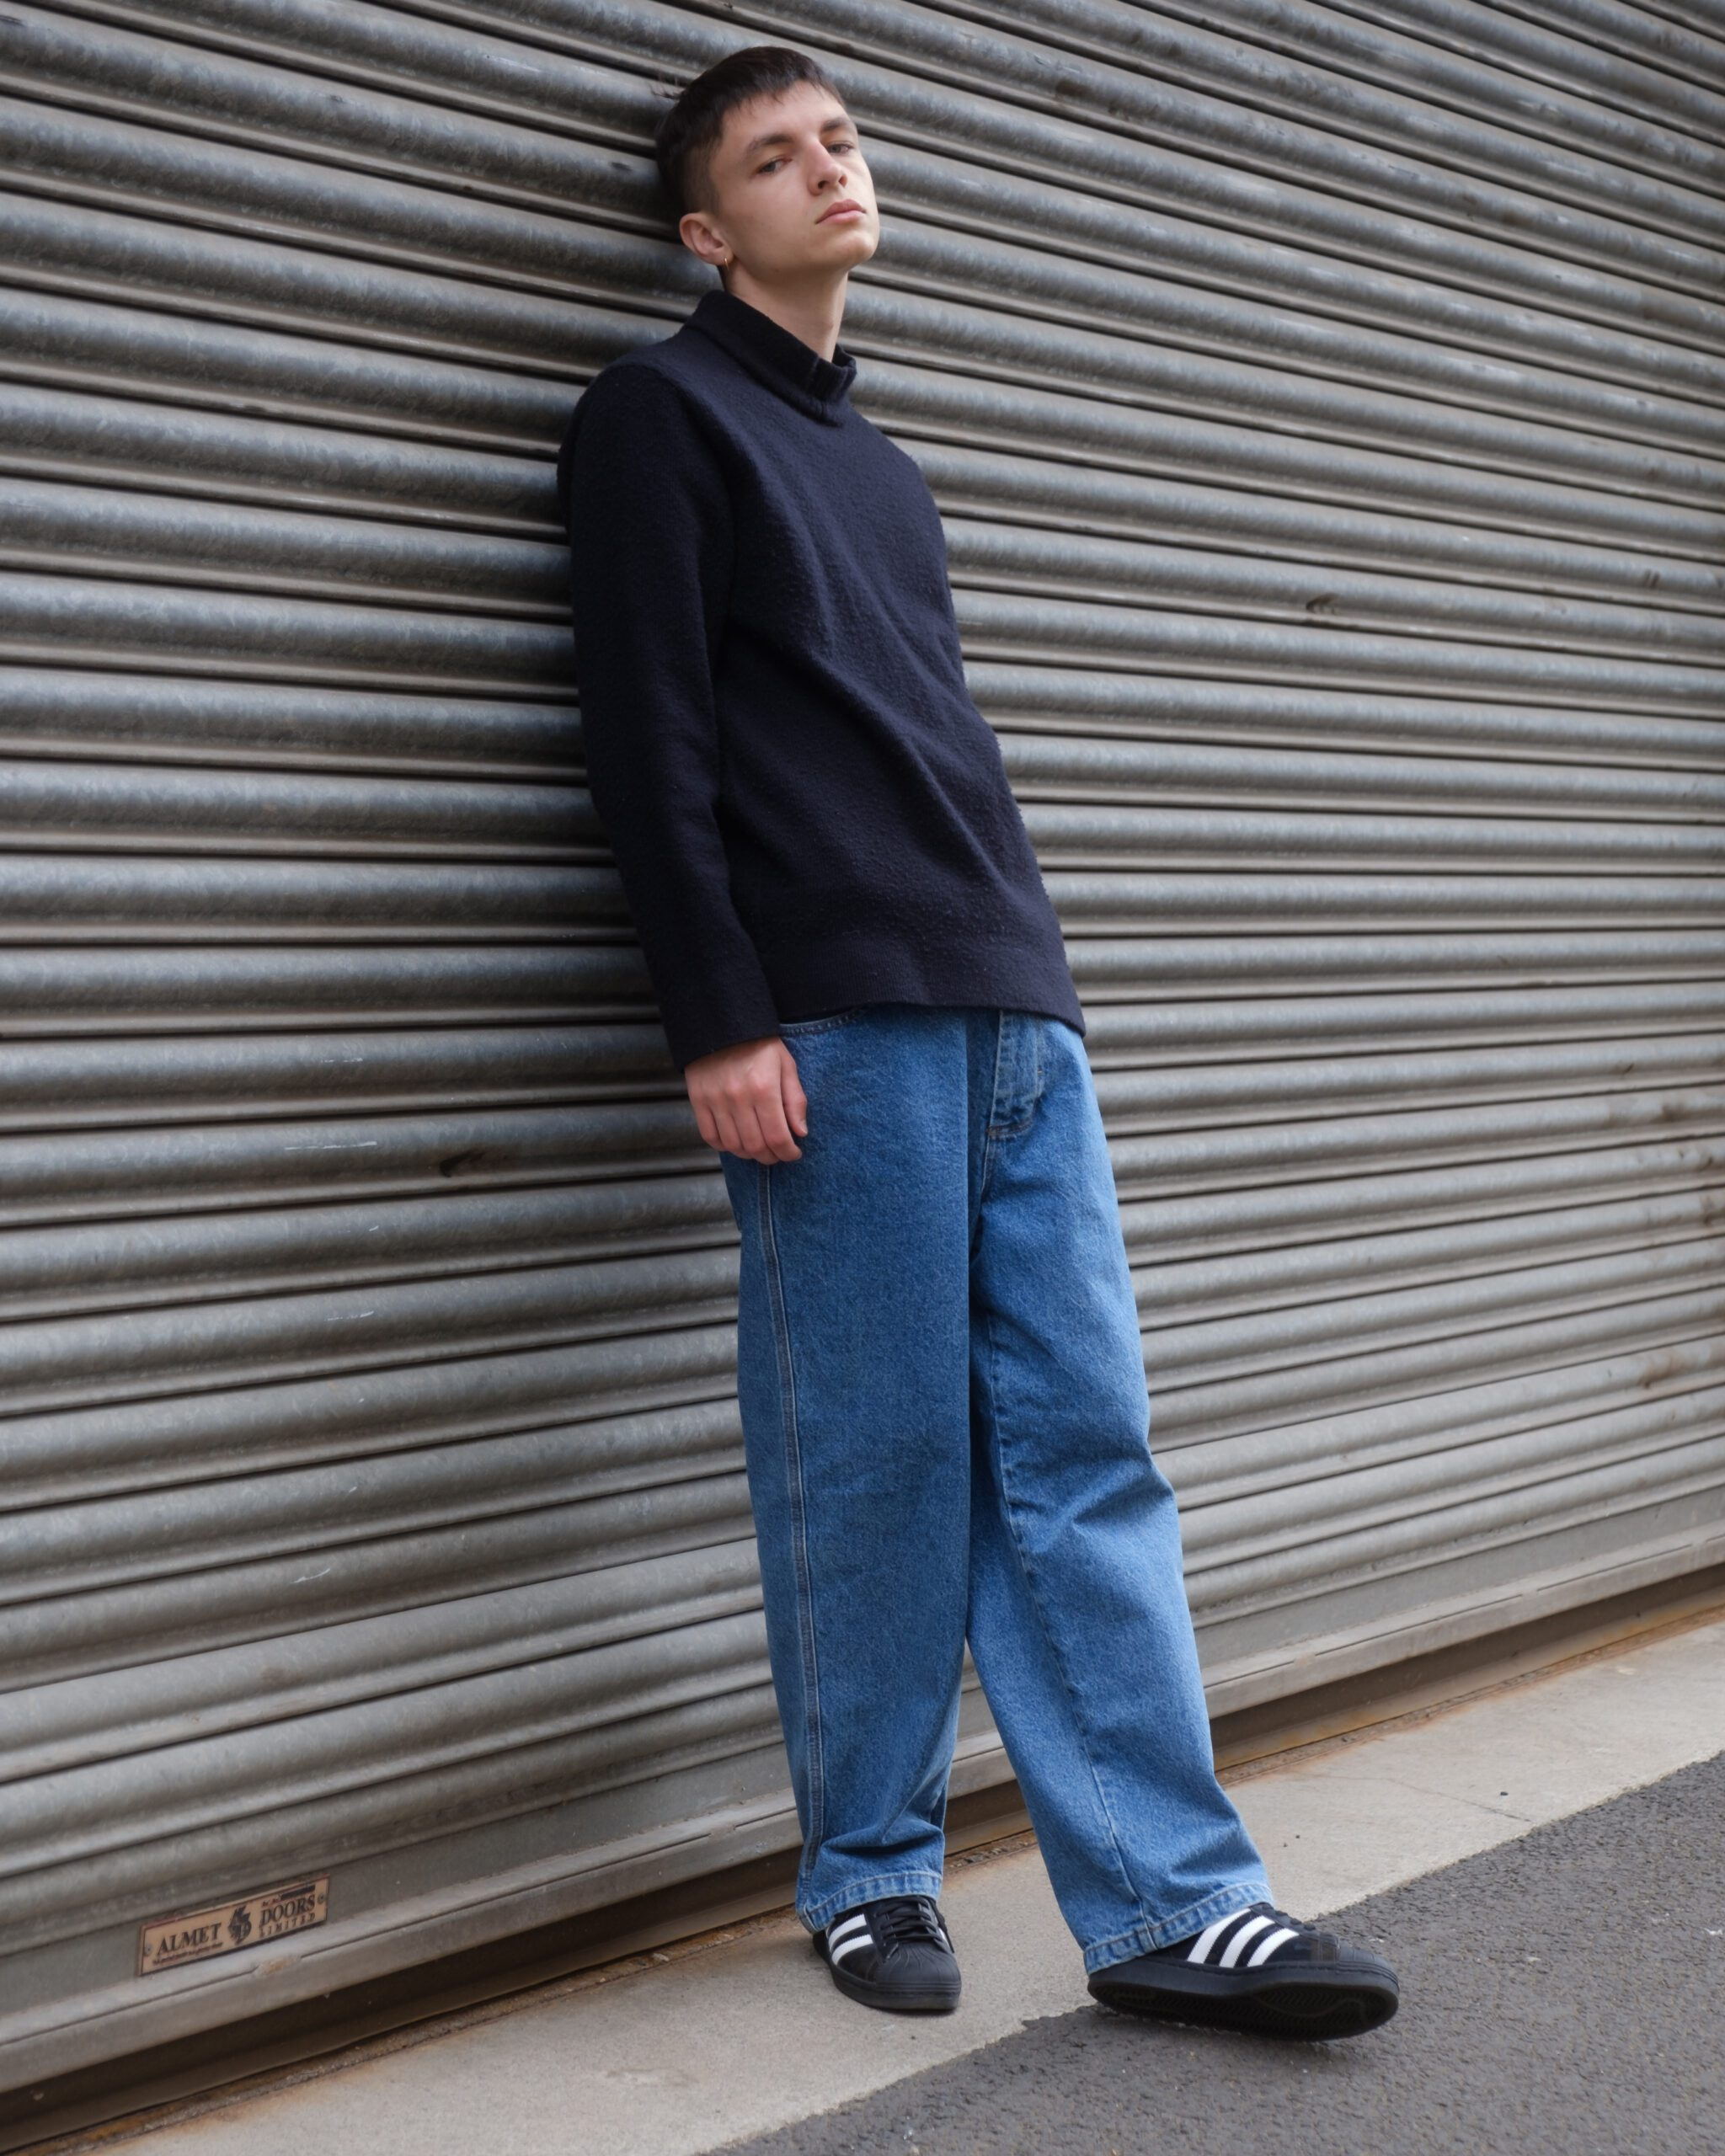 Angus hinnigan full length shot in blue jeans